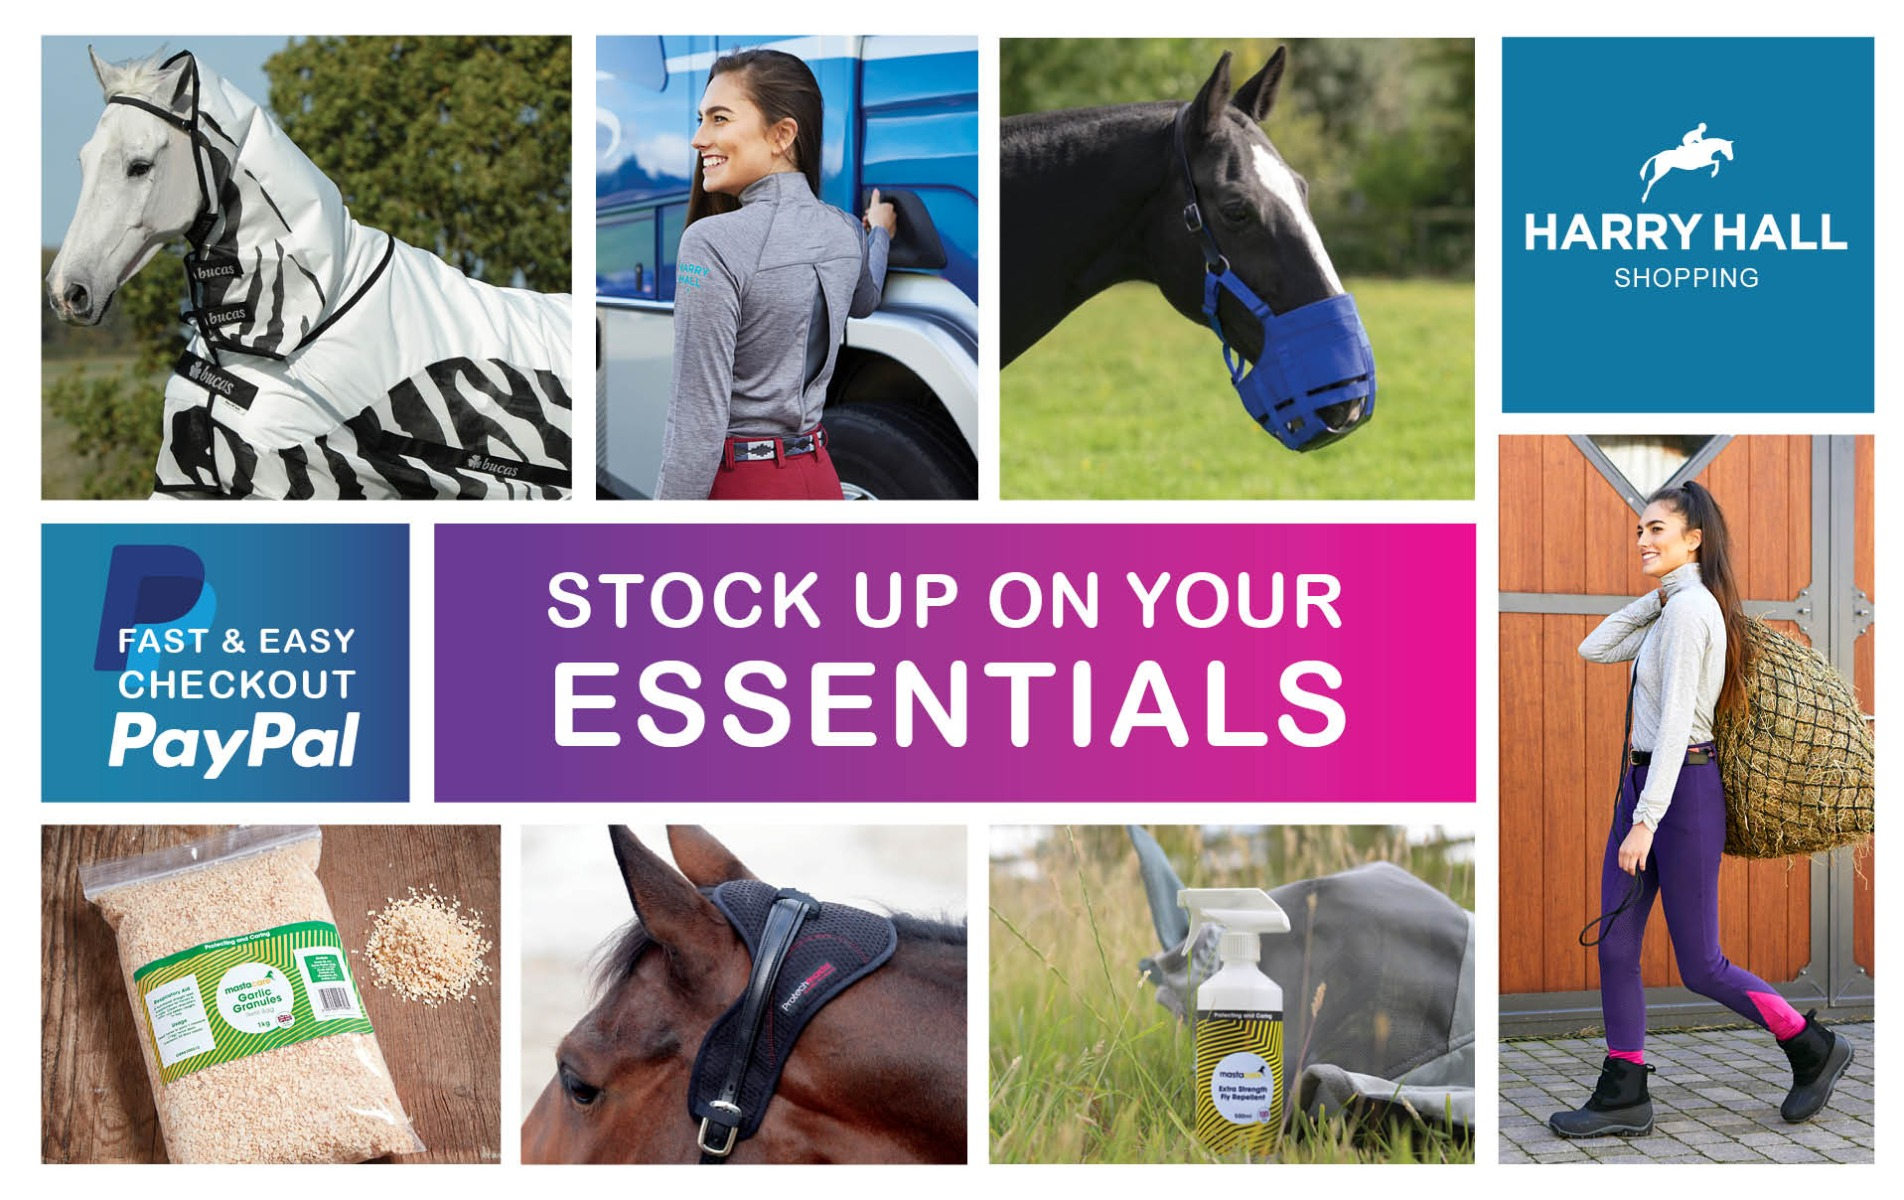 Stock up on Essentials | Harry Hall